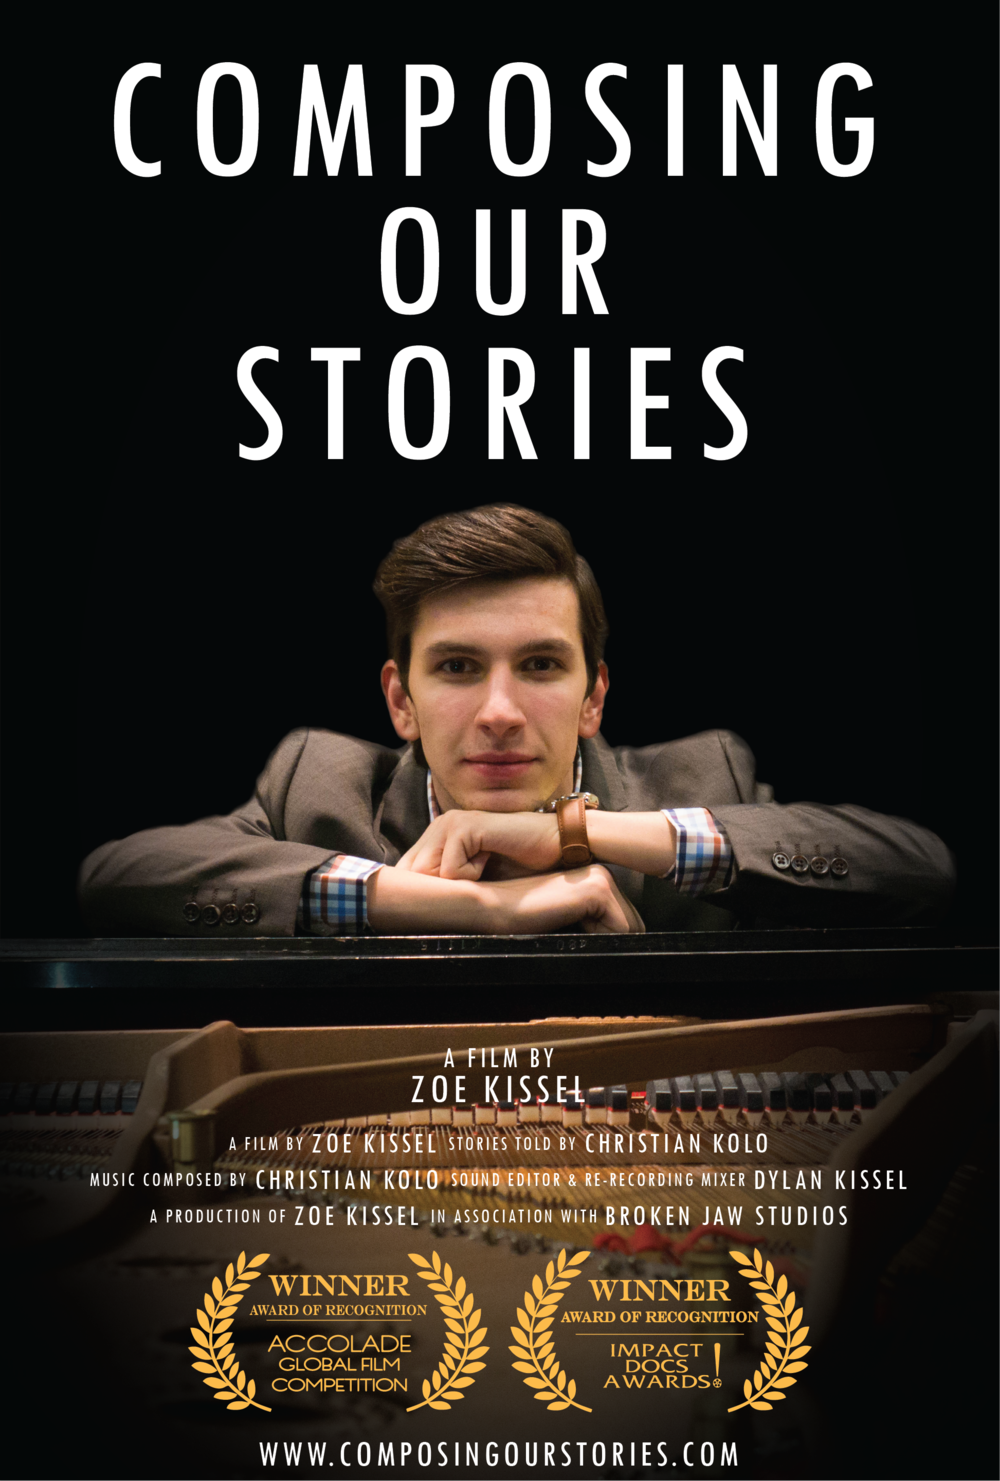 composing our stories zoe kissel film poster christian kolo composer